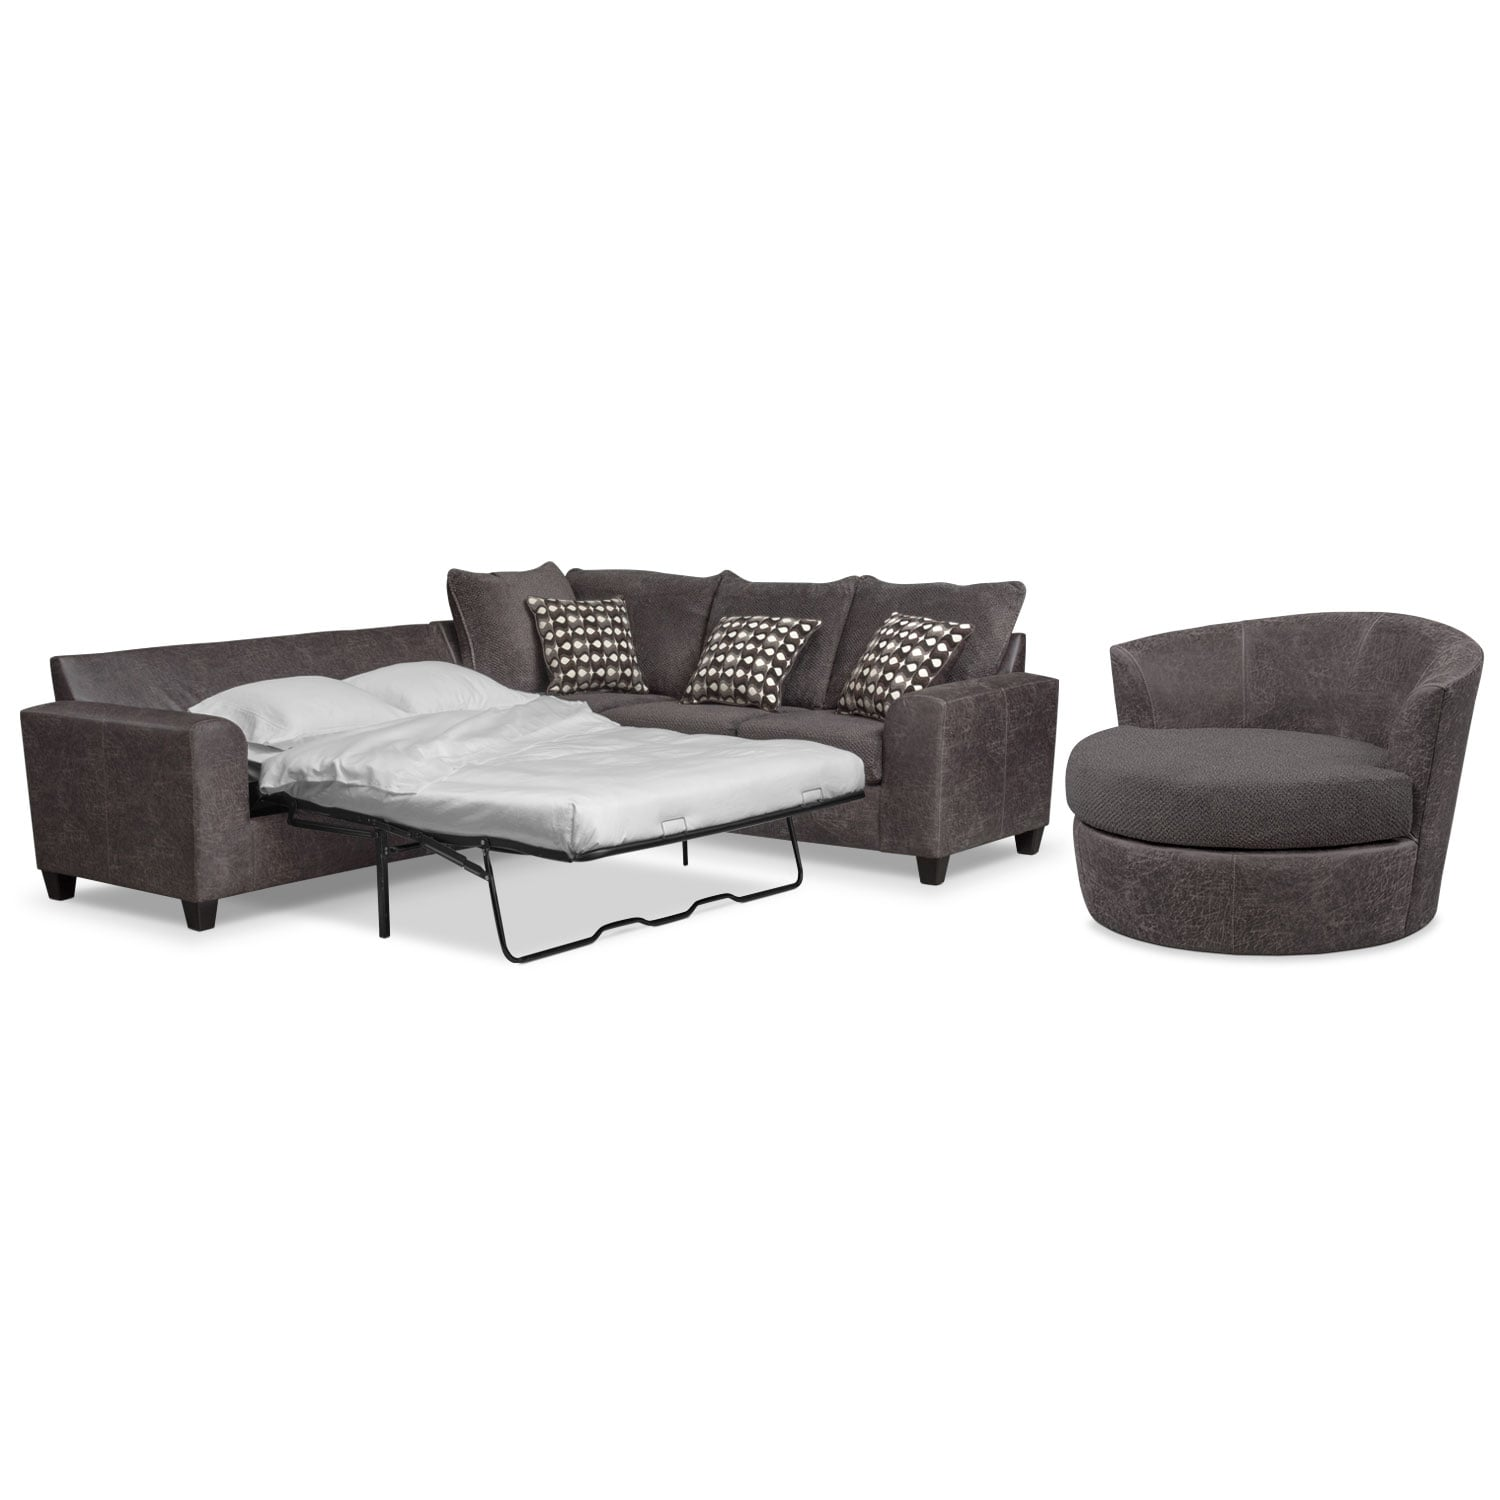 Living Room Furniture - Brando 2-Piece Innerspring Sleeper Sectional and Swivel Chair Set - Smoke